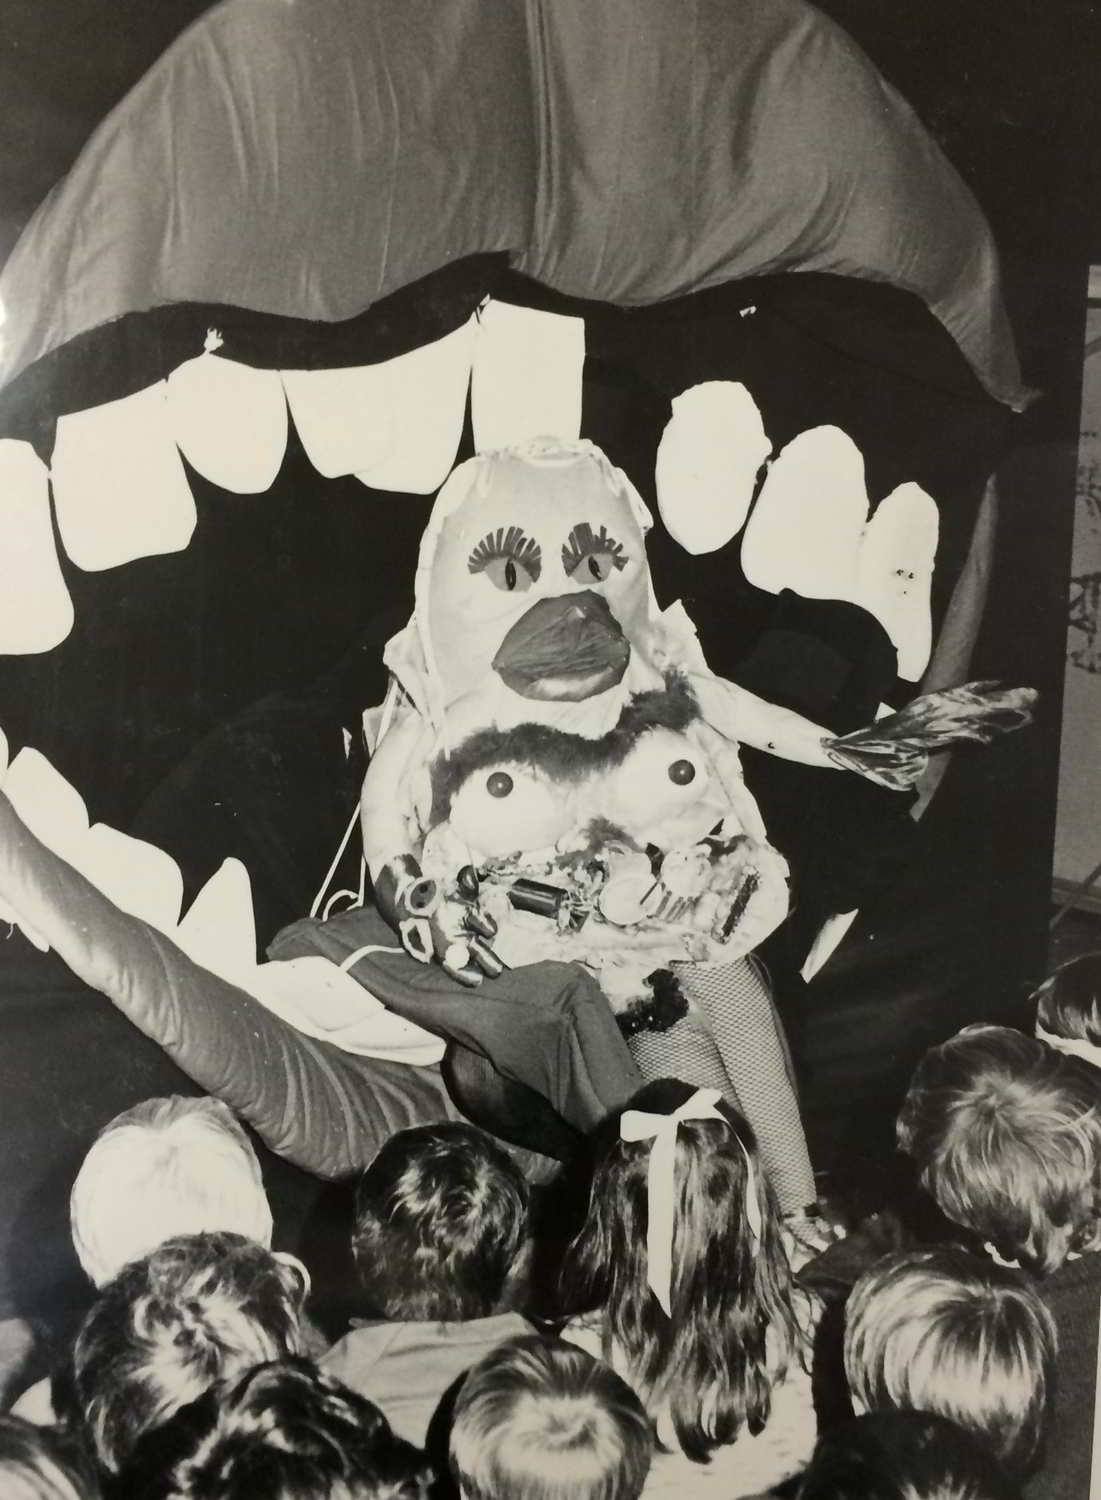 garish puppet with ice-cream breasts and cherry nipples being rolled into the mouth by its tongue